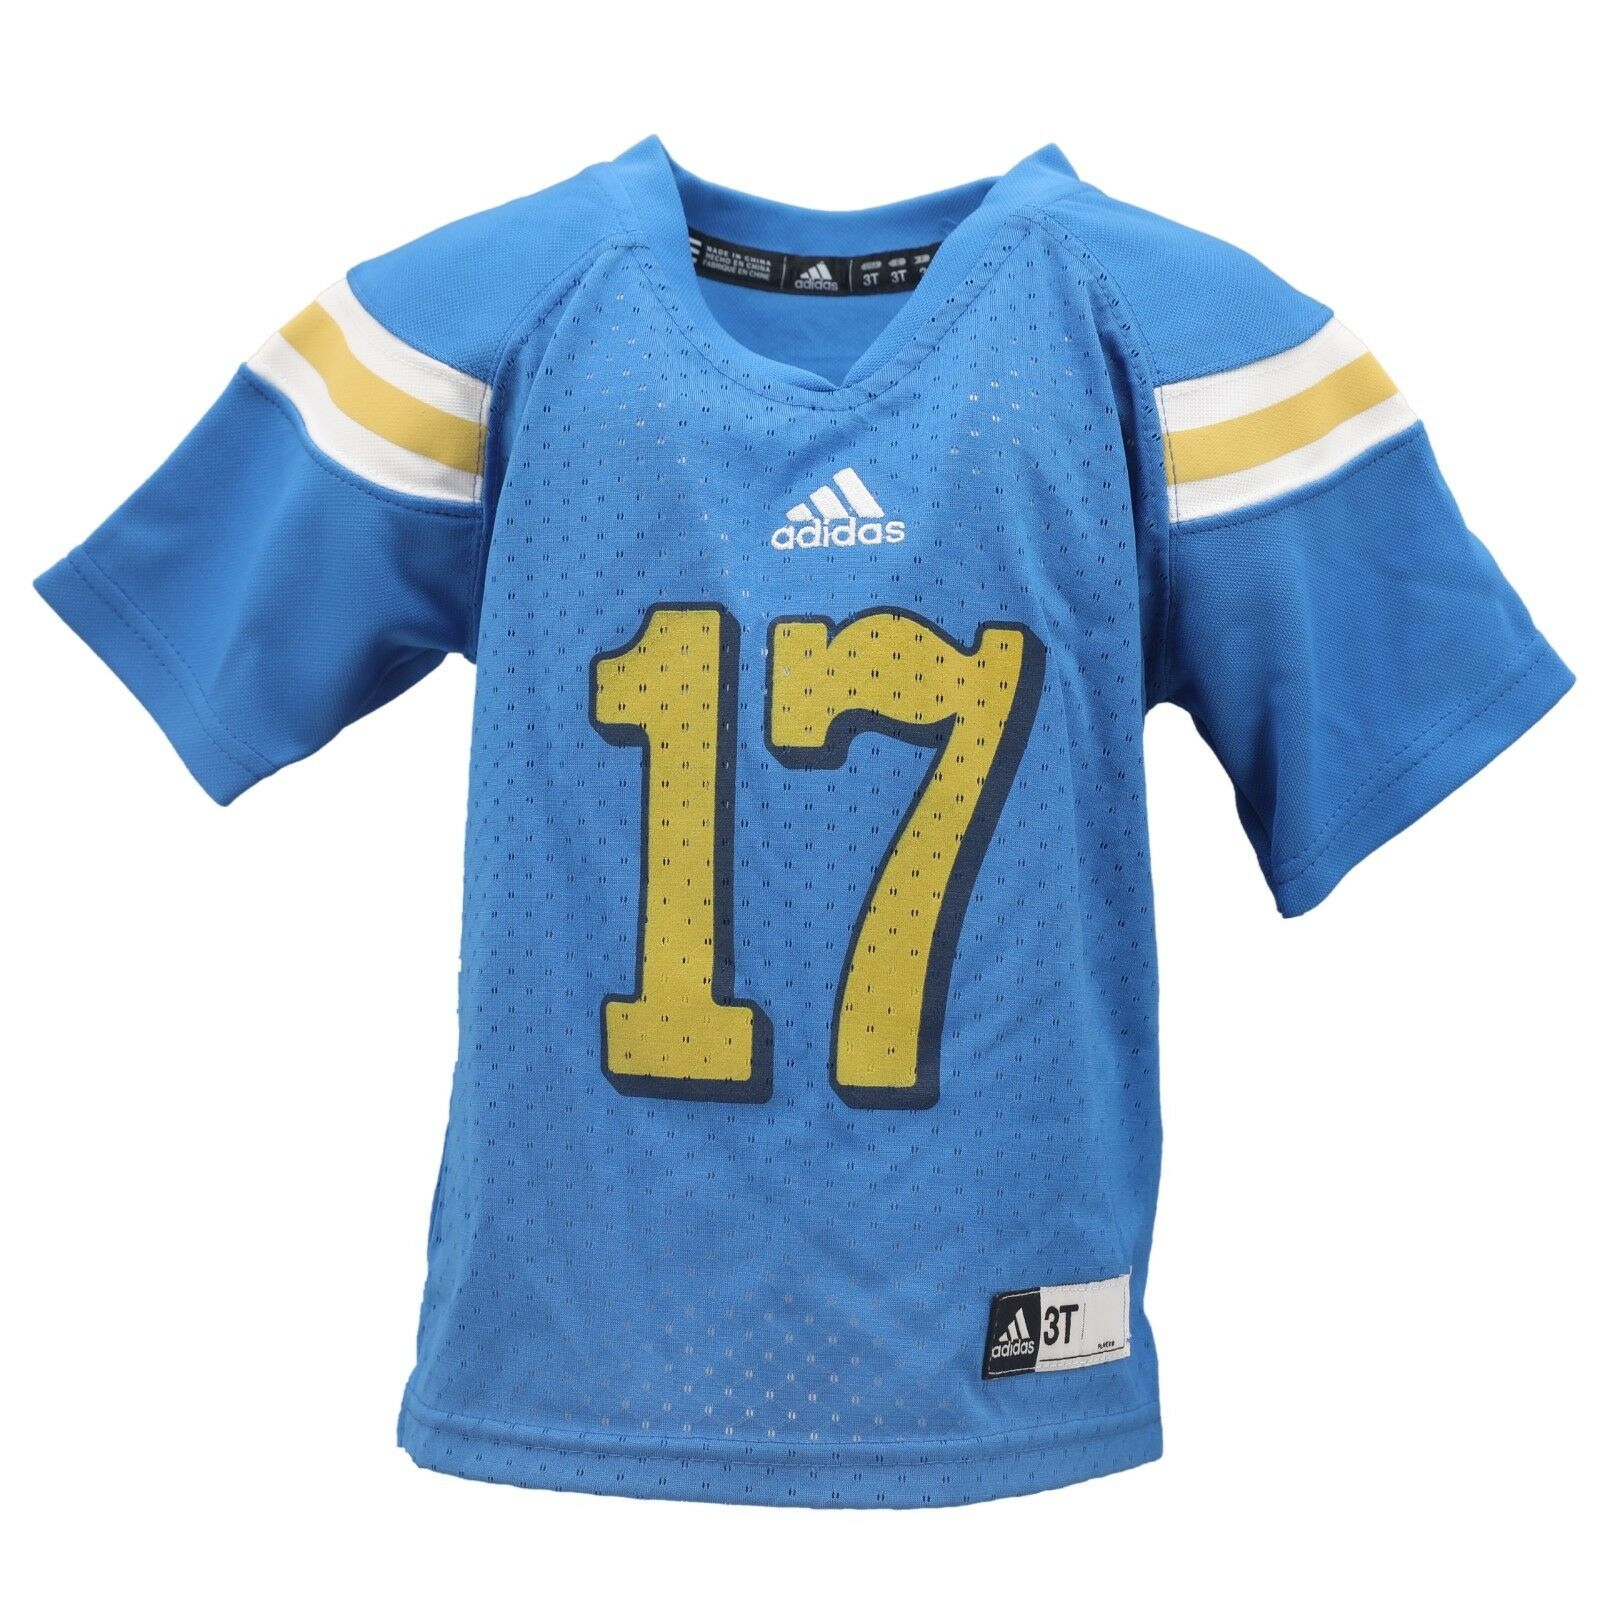 online store 5aa3d bc093 Details about UCLA Bruins Official NCAA Adidas Infant Toddler Size Football  Jersey New Tags